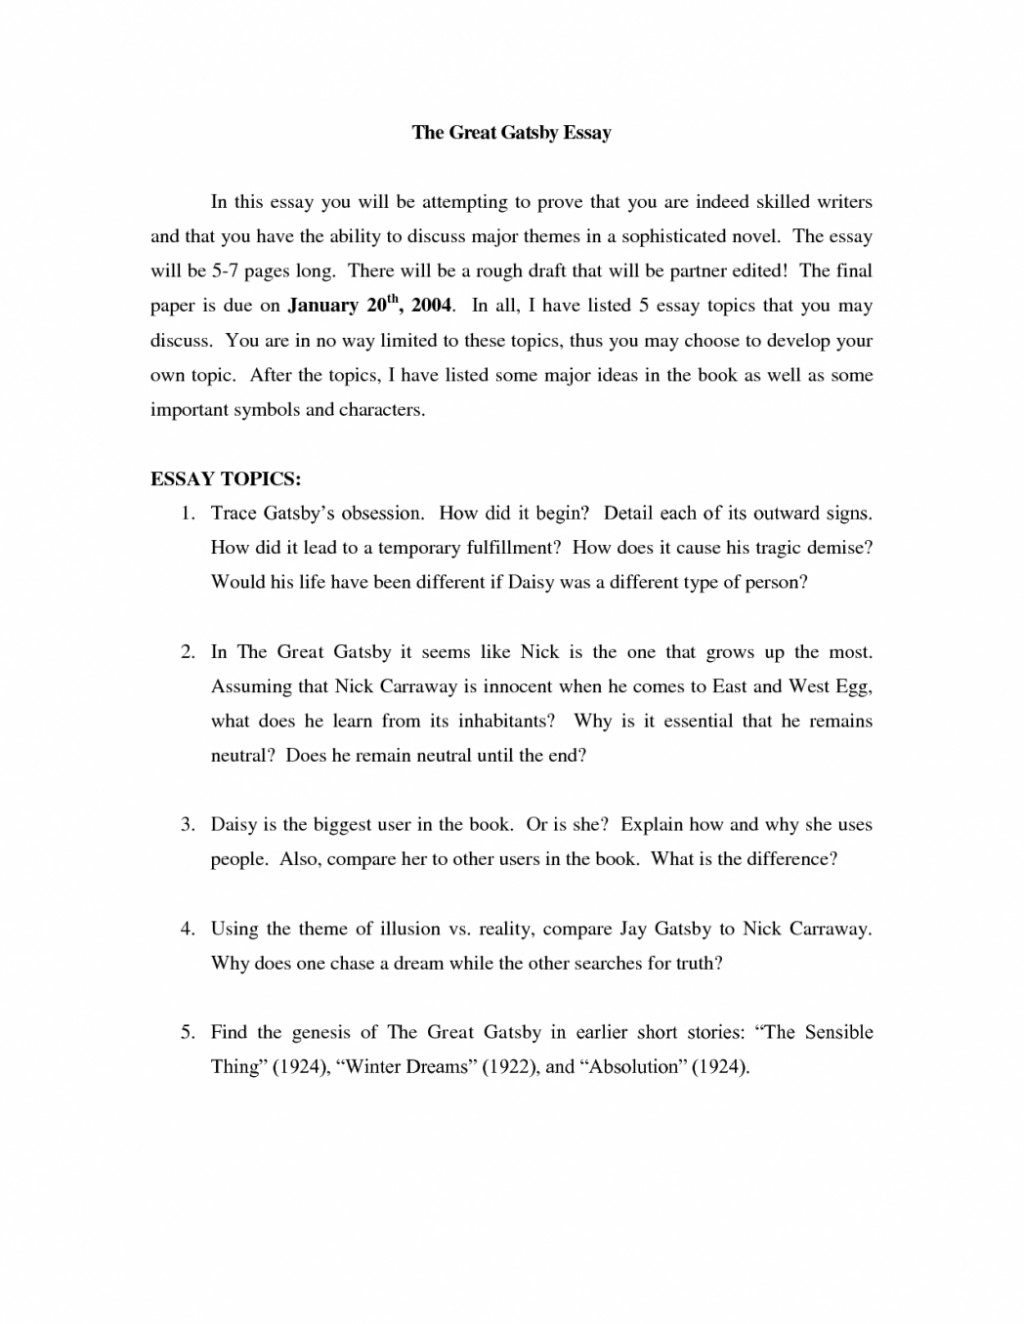 014 Essay Example On American Dreamt Gatsby Thesis The Future Is Still Possible Argumentative Statement For Template 4ni Attainable Argument Prompt Alive Research About Topics 1048x1356 Fantastic Great Dream Conclusion Pdf Free Large